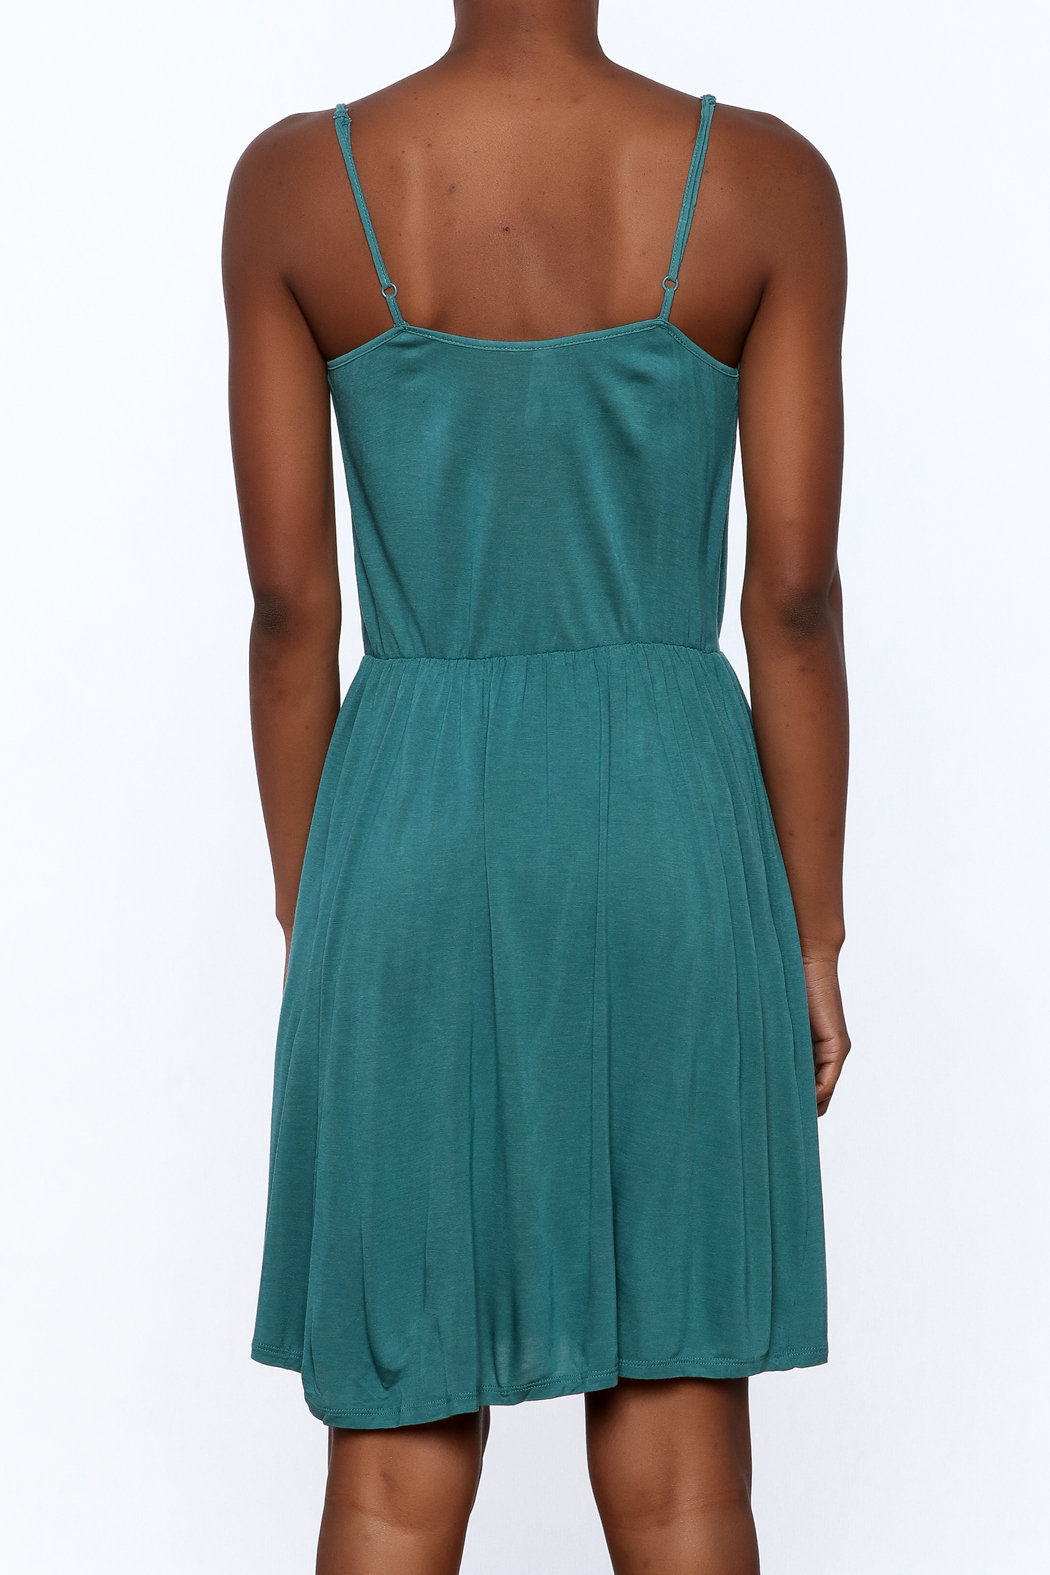 Gentle Fawn Teal Sleeveless Dress - Back Cropped Image